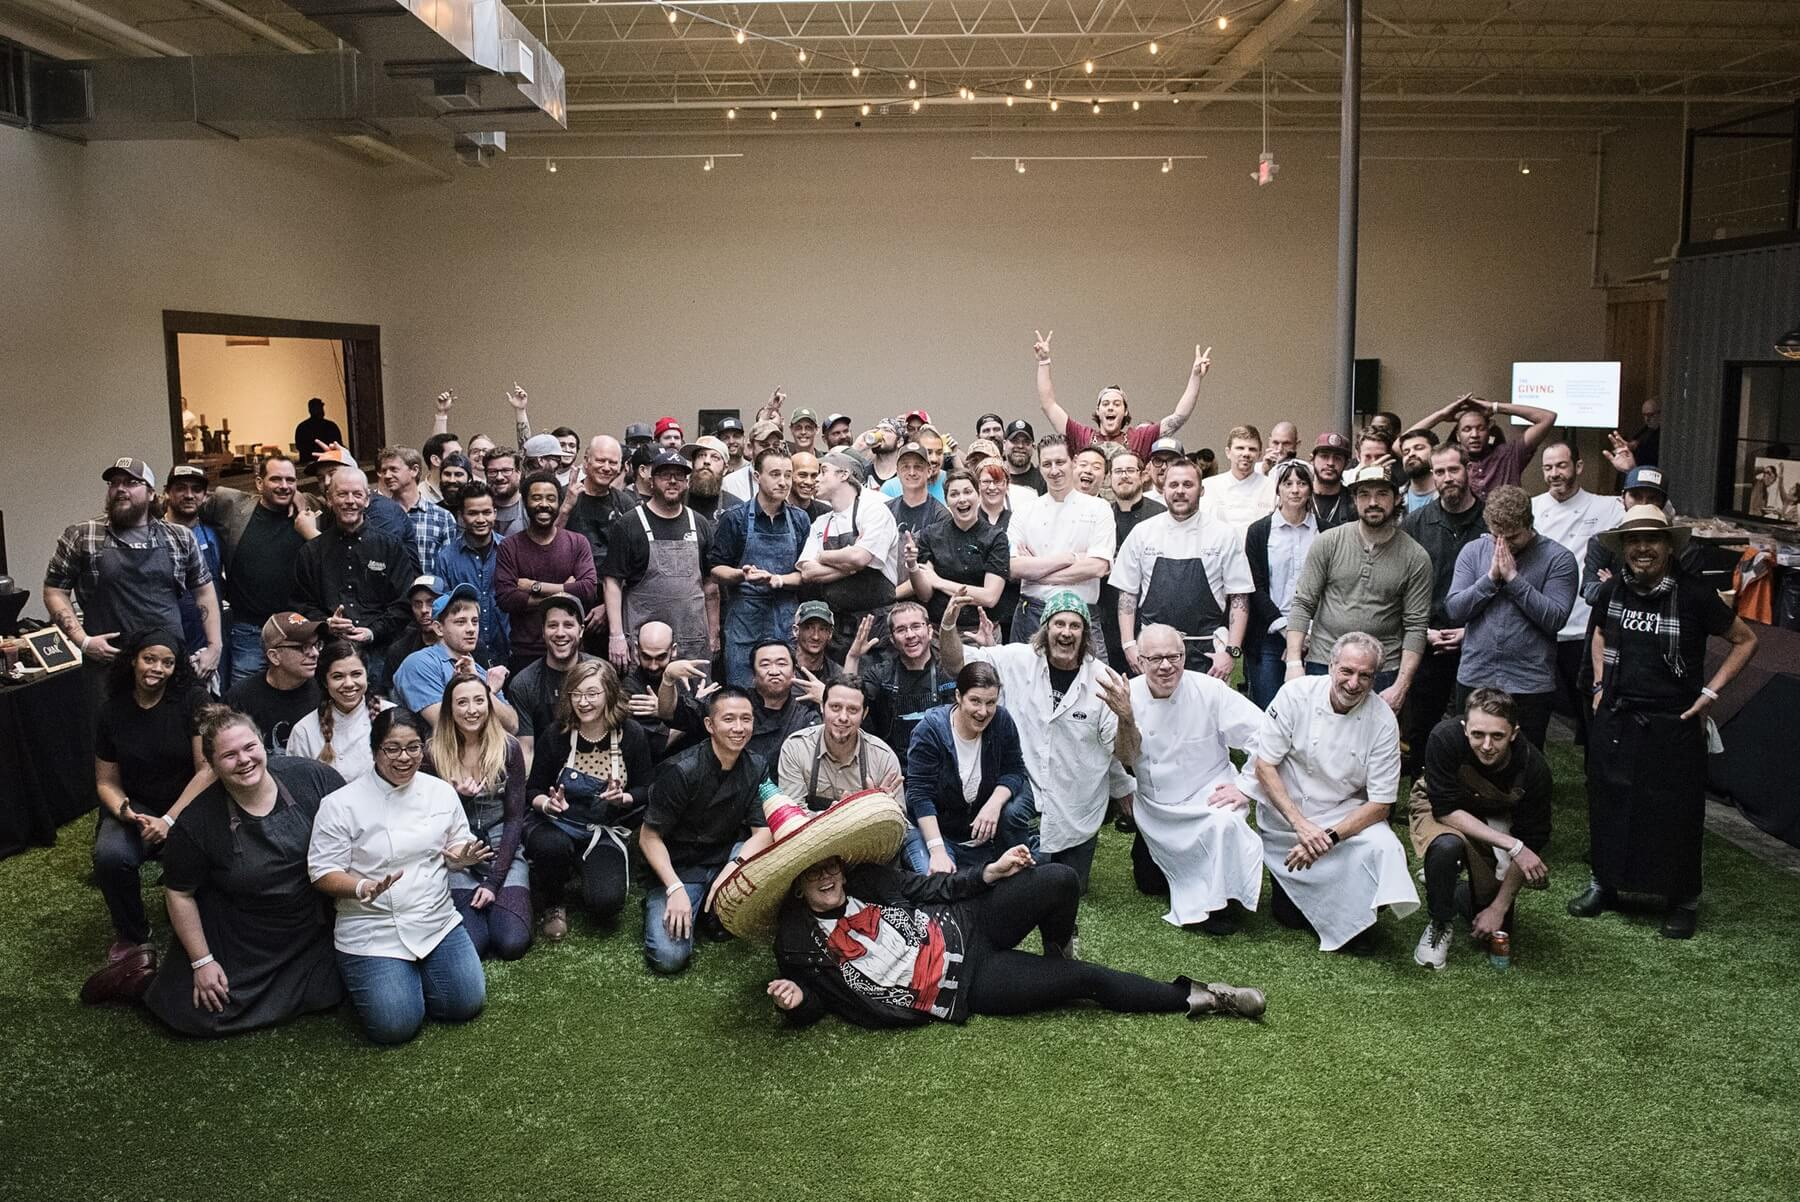 Chef participants in Team Hidi 6, which took place in January and raised nearly $720,000 | Image: The Giving Kitchen